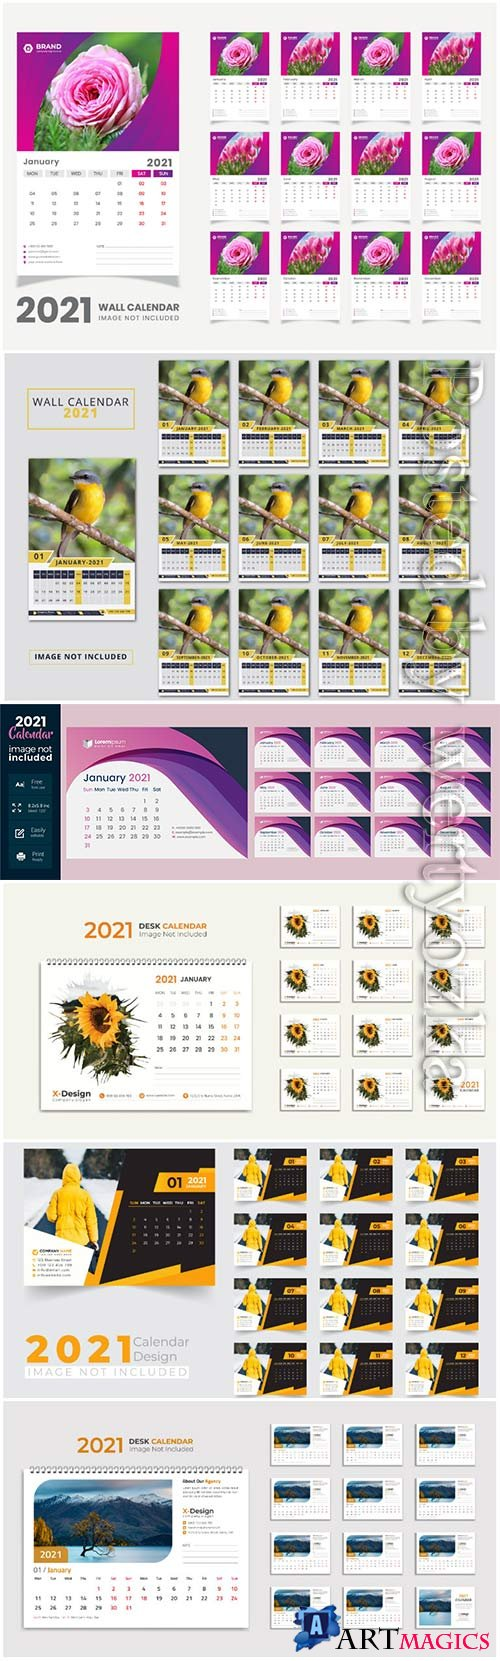 Desk calendar 2021 template design for new year vol 5